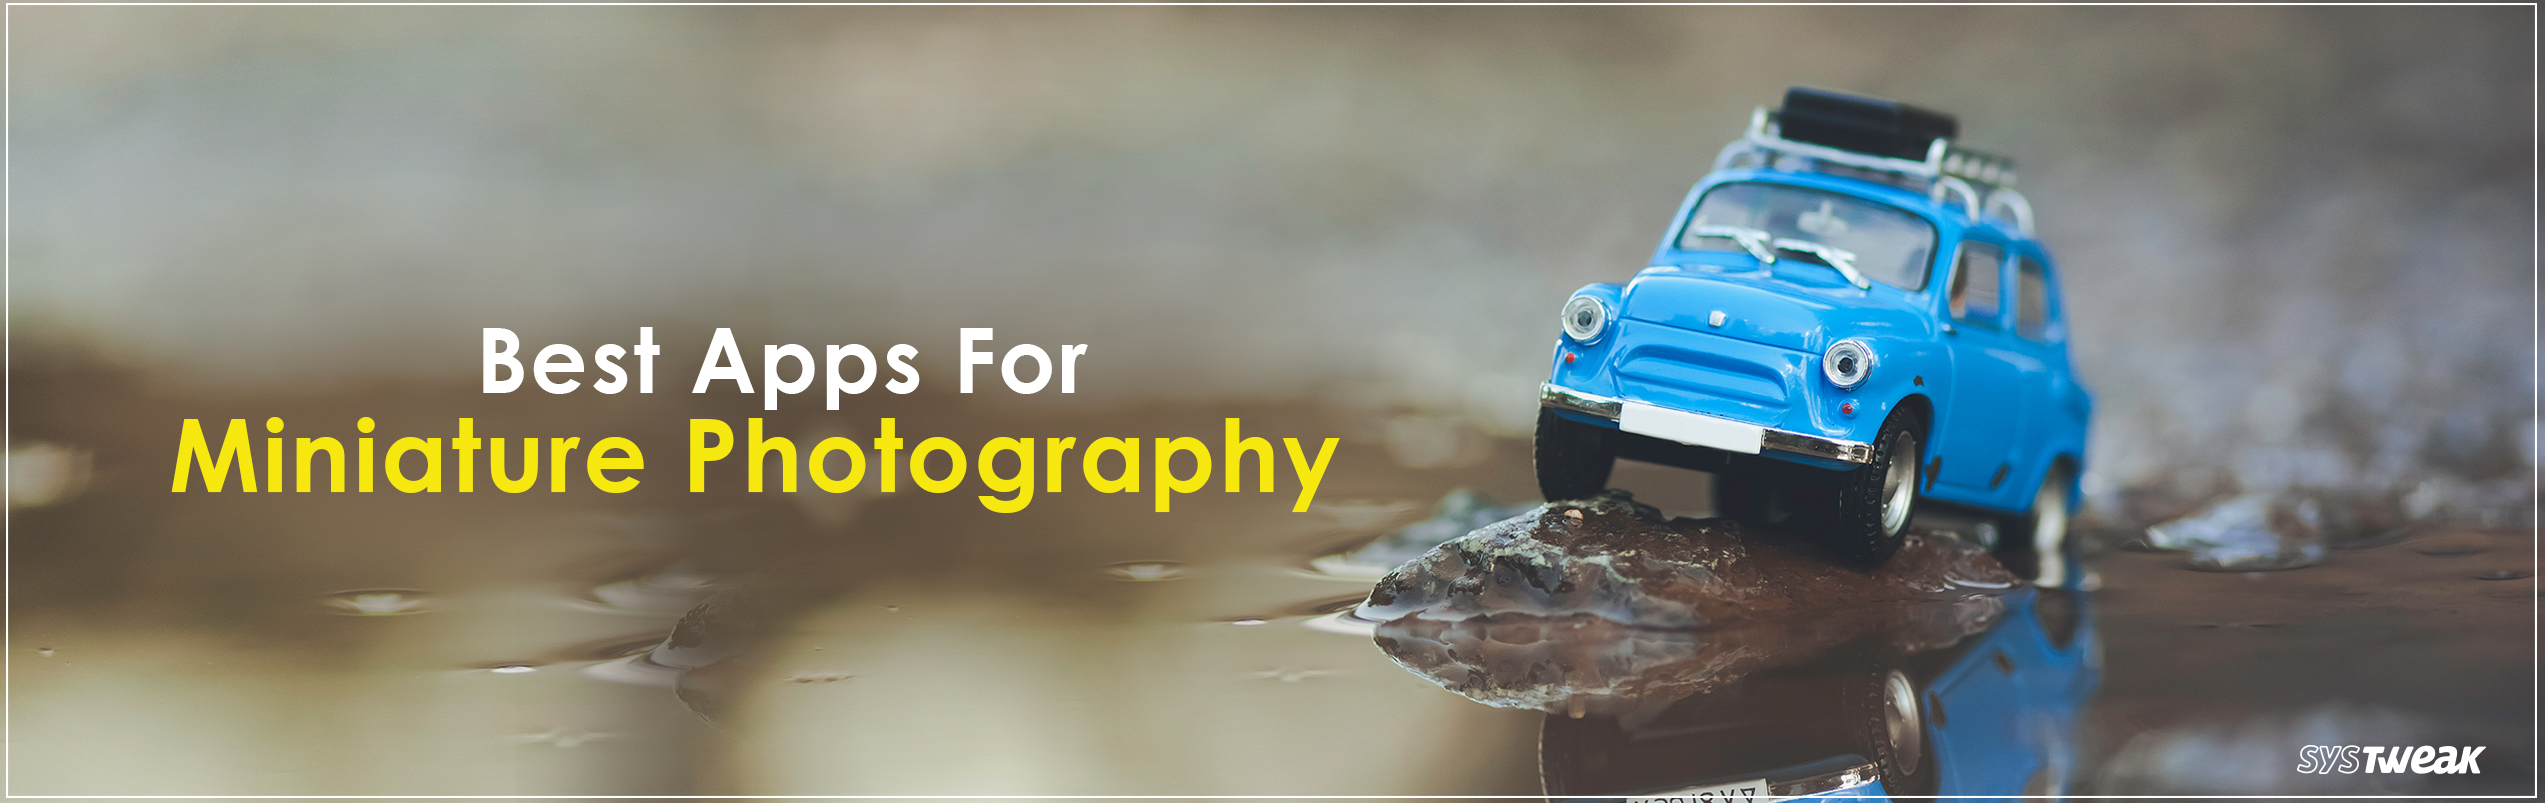 Top 5 Tilt Shift Apps for Miniature Photography